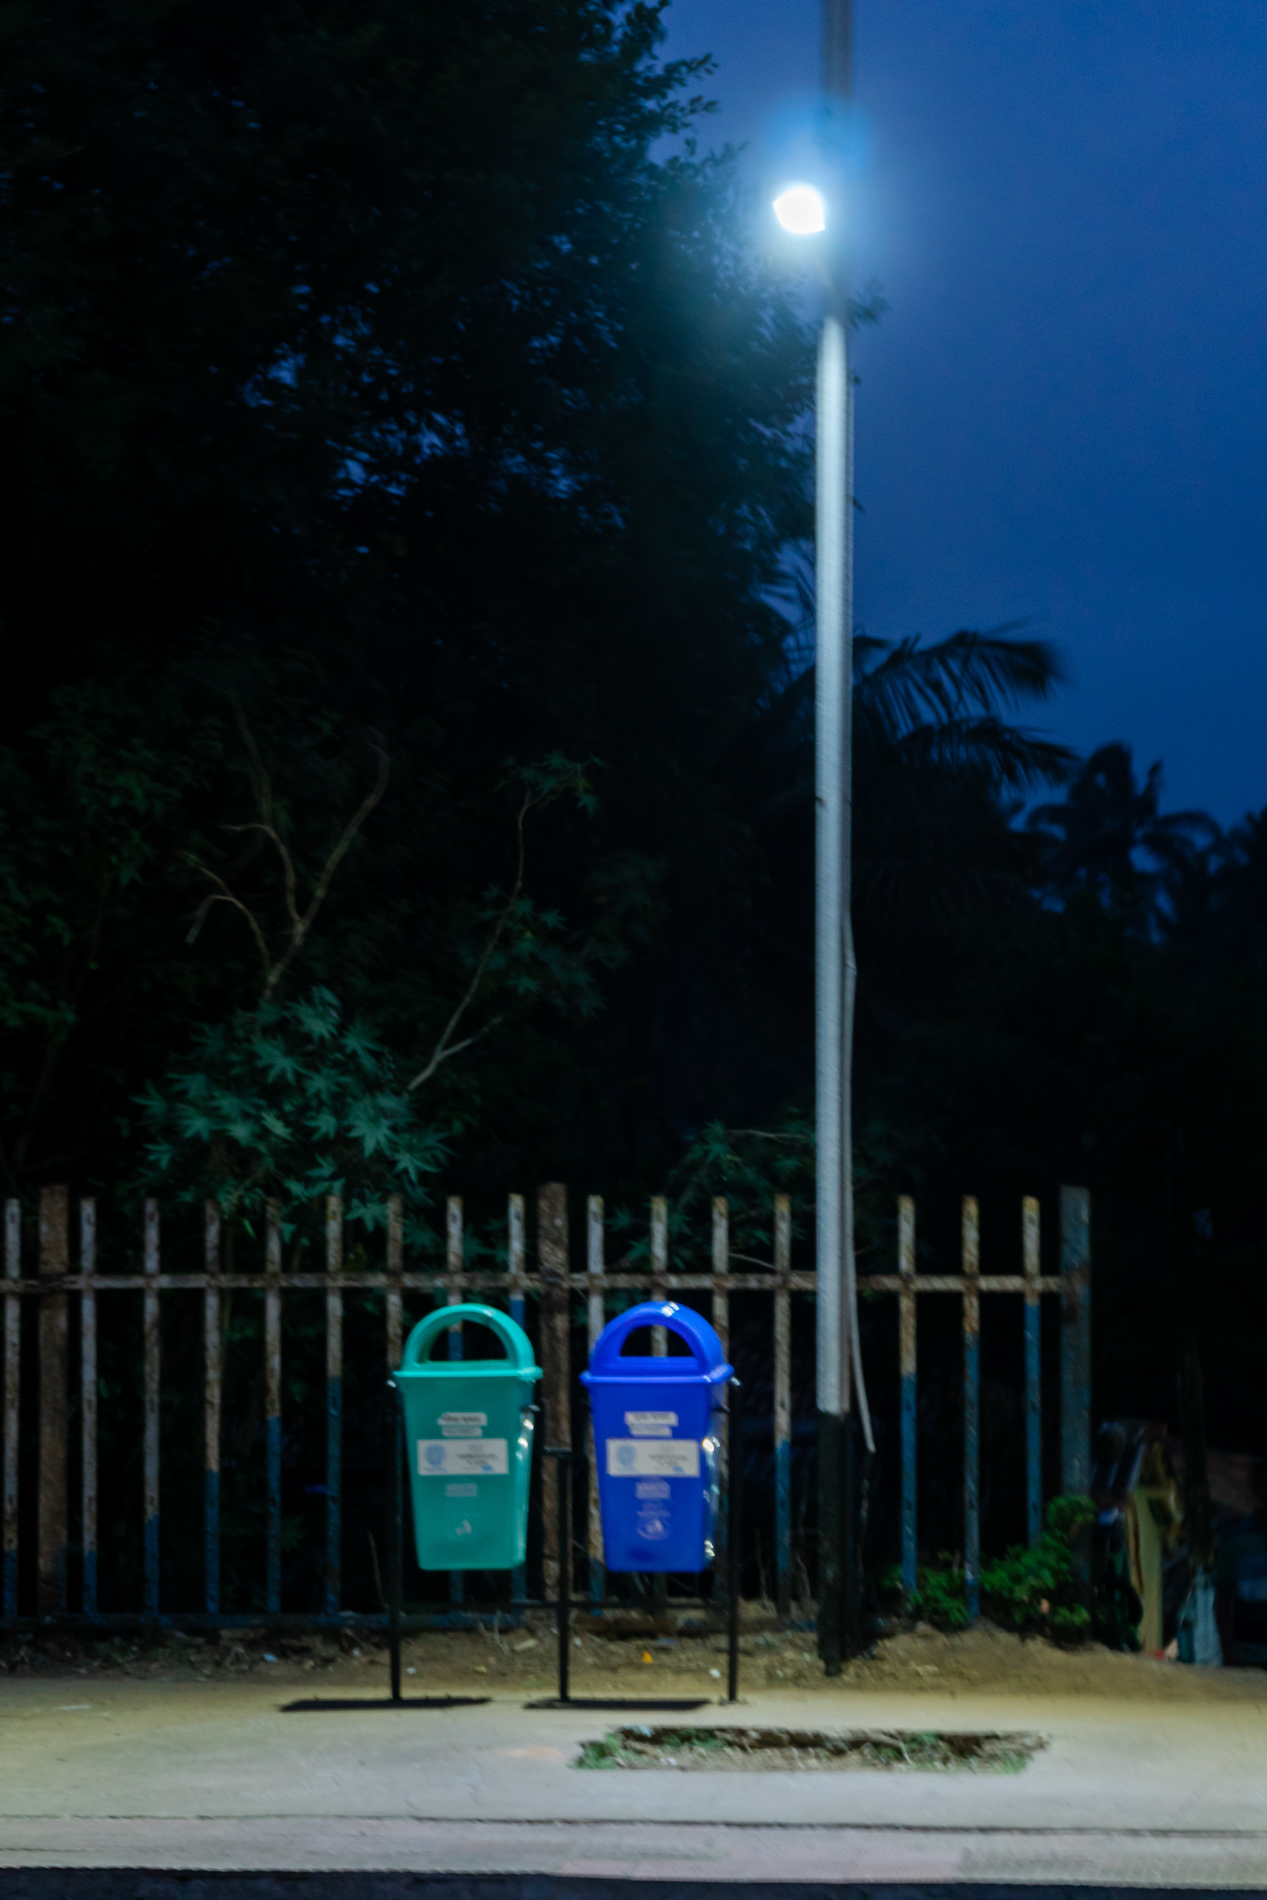 On way back to home, I noticed the spot light on the two garbage bins.  I wanted to show the geometry, shapes in the image.  For me the garbage bins seemed like a couple, having a relation with the lamp besides them.